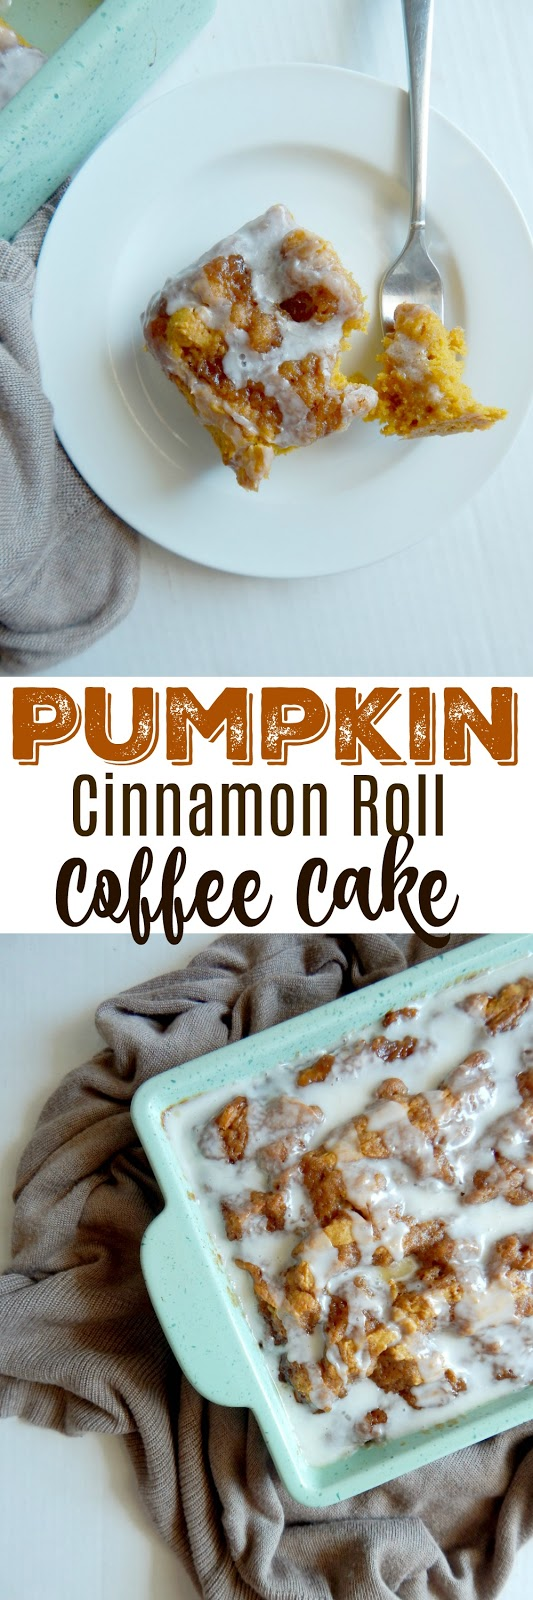 pumpkin cinnamon roll coffee cake